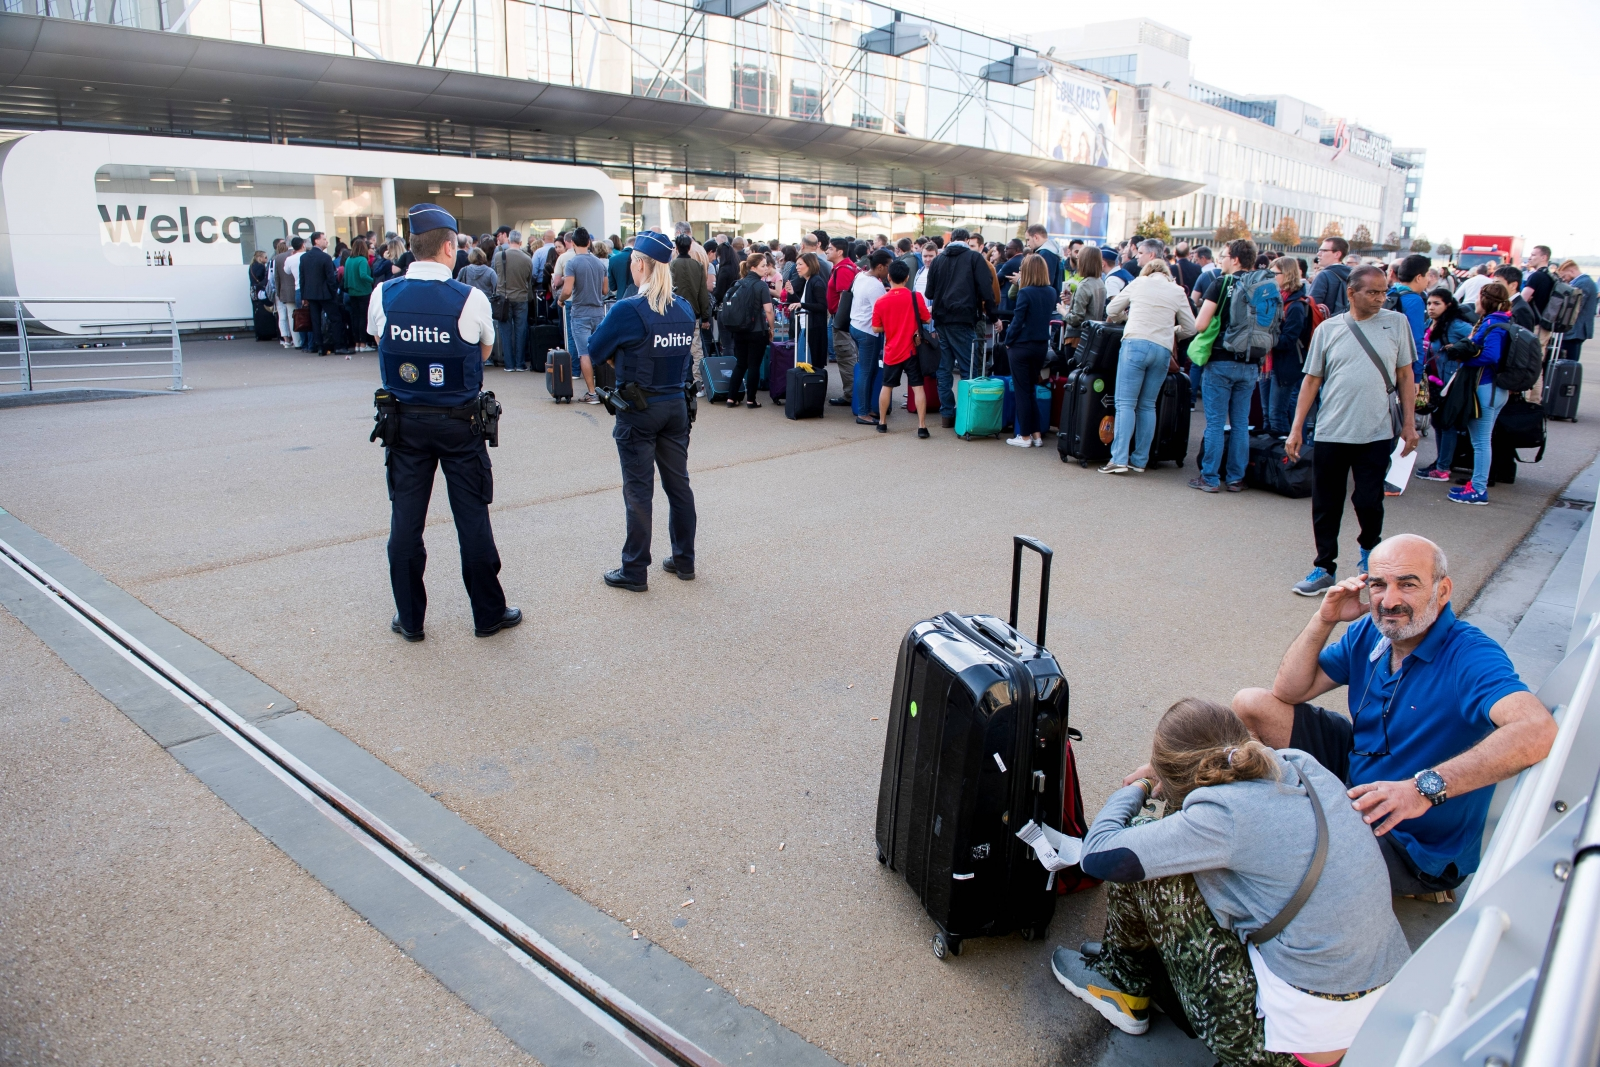 Police and passengers outside Brussels airport